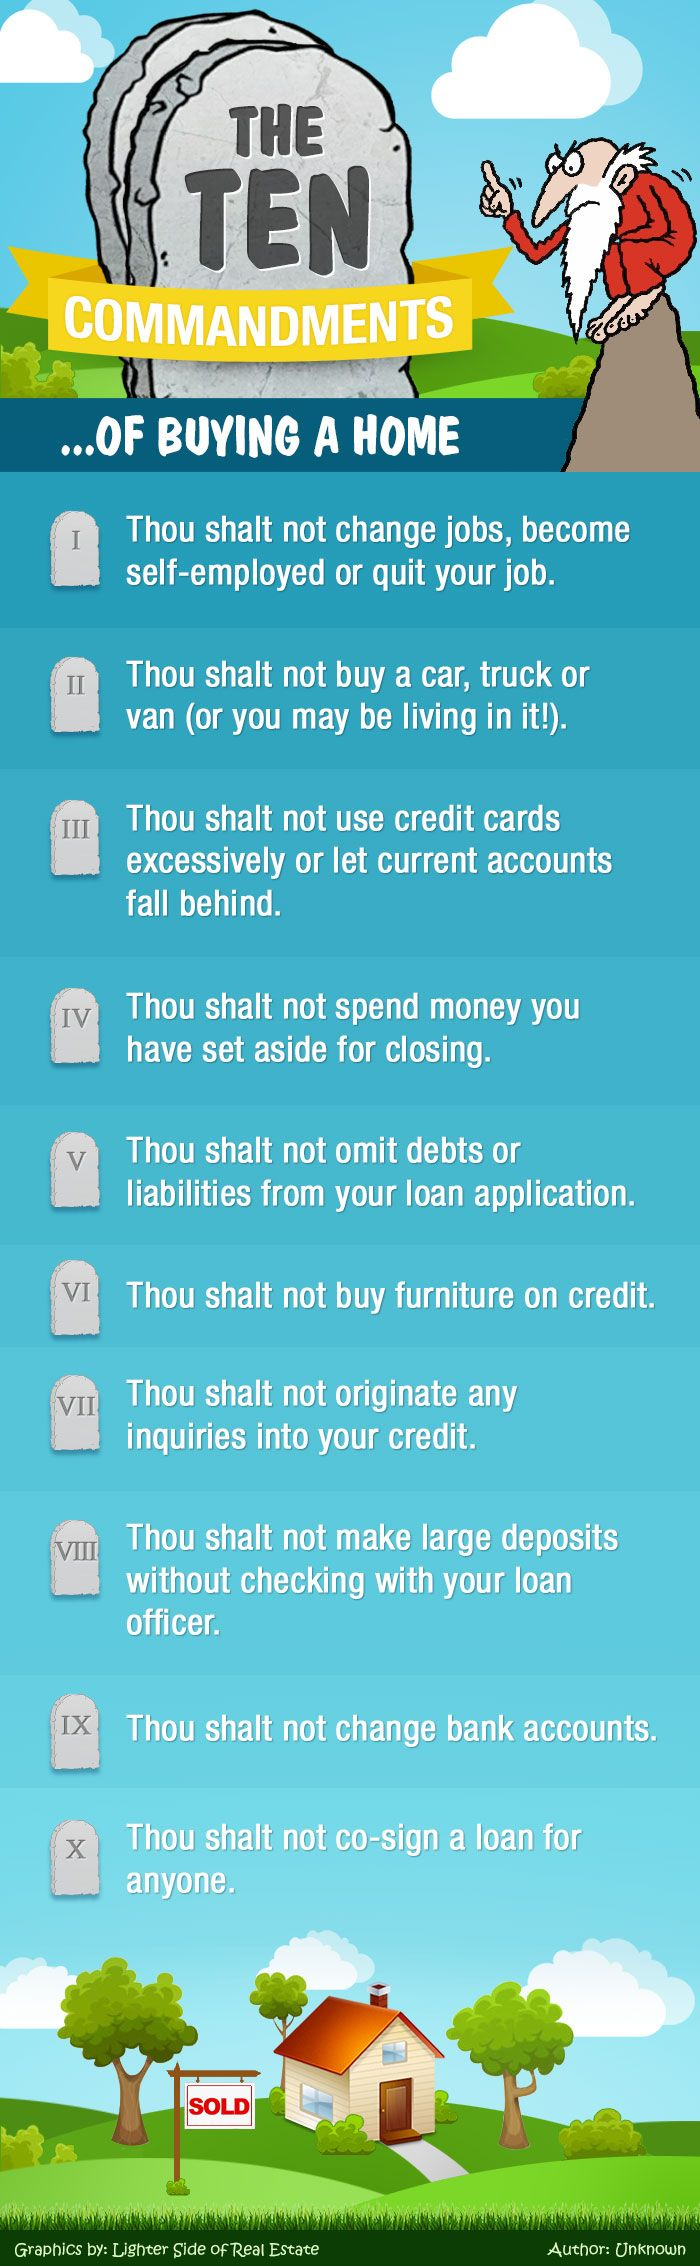 10-commandments-of-buying-homes.jpg